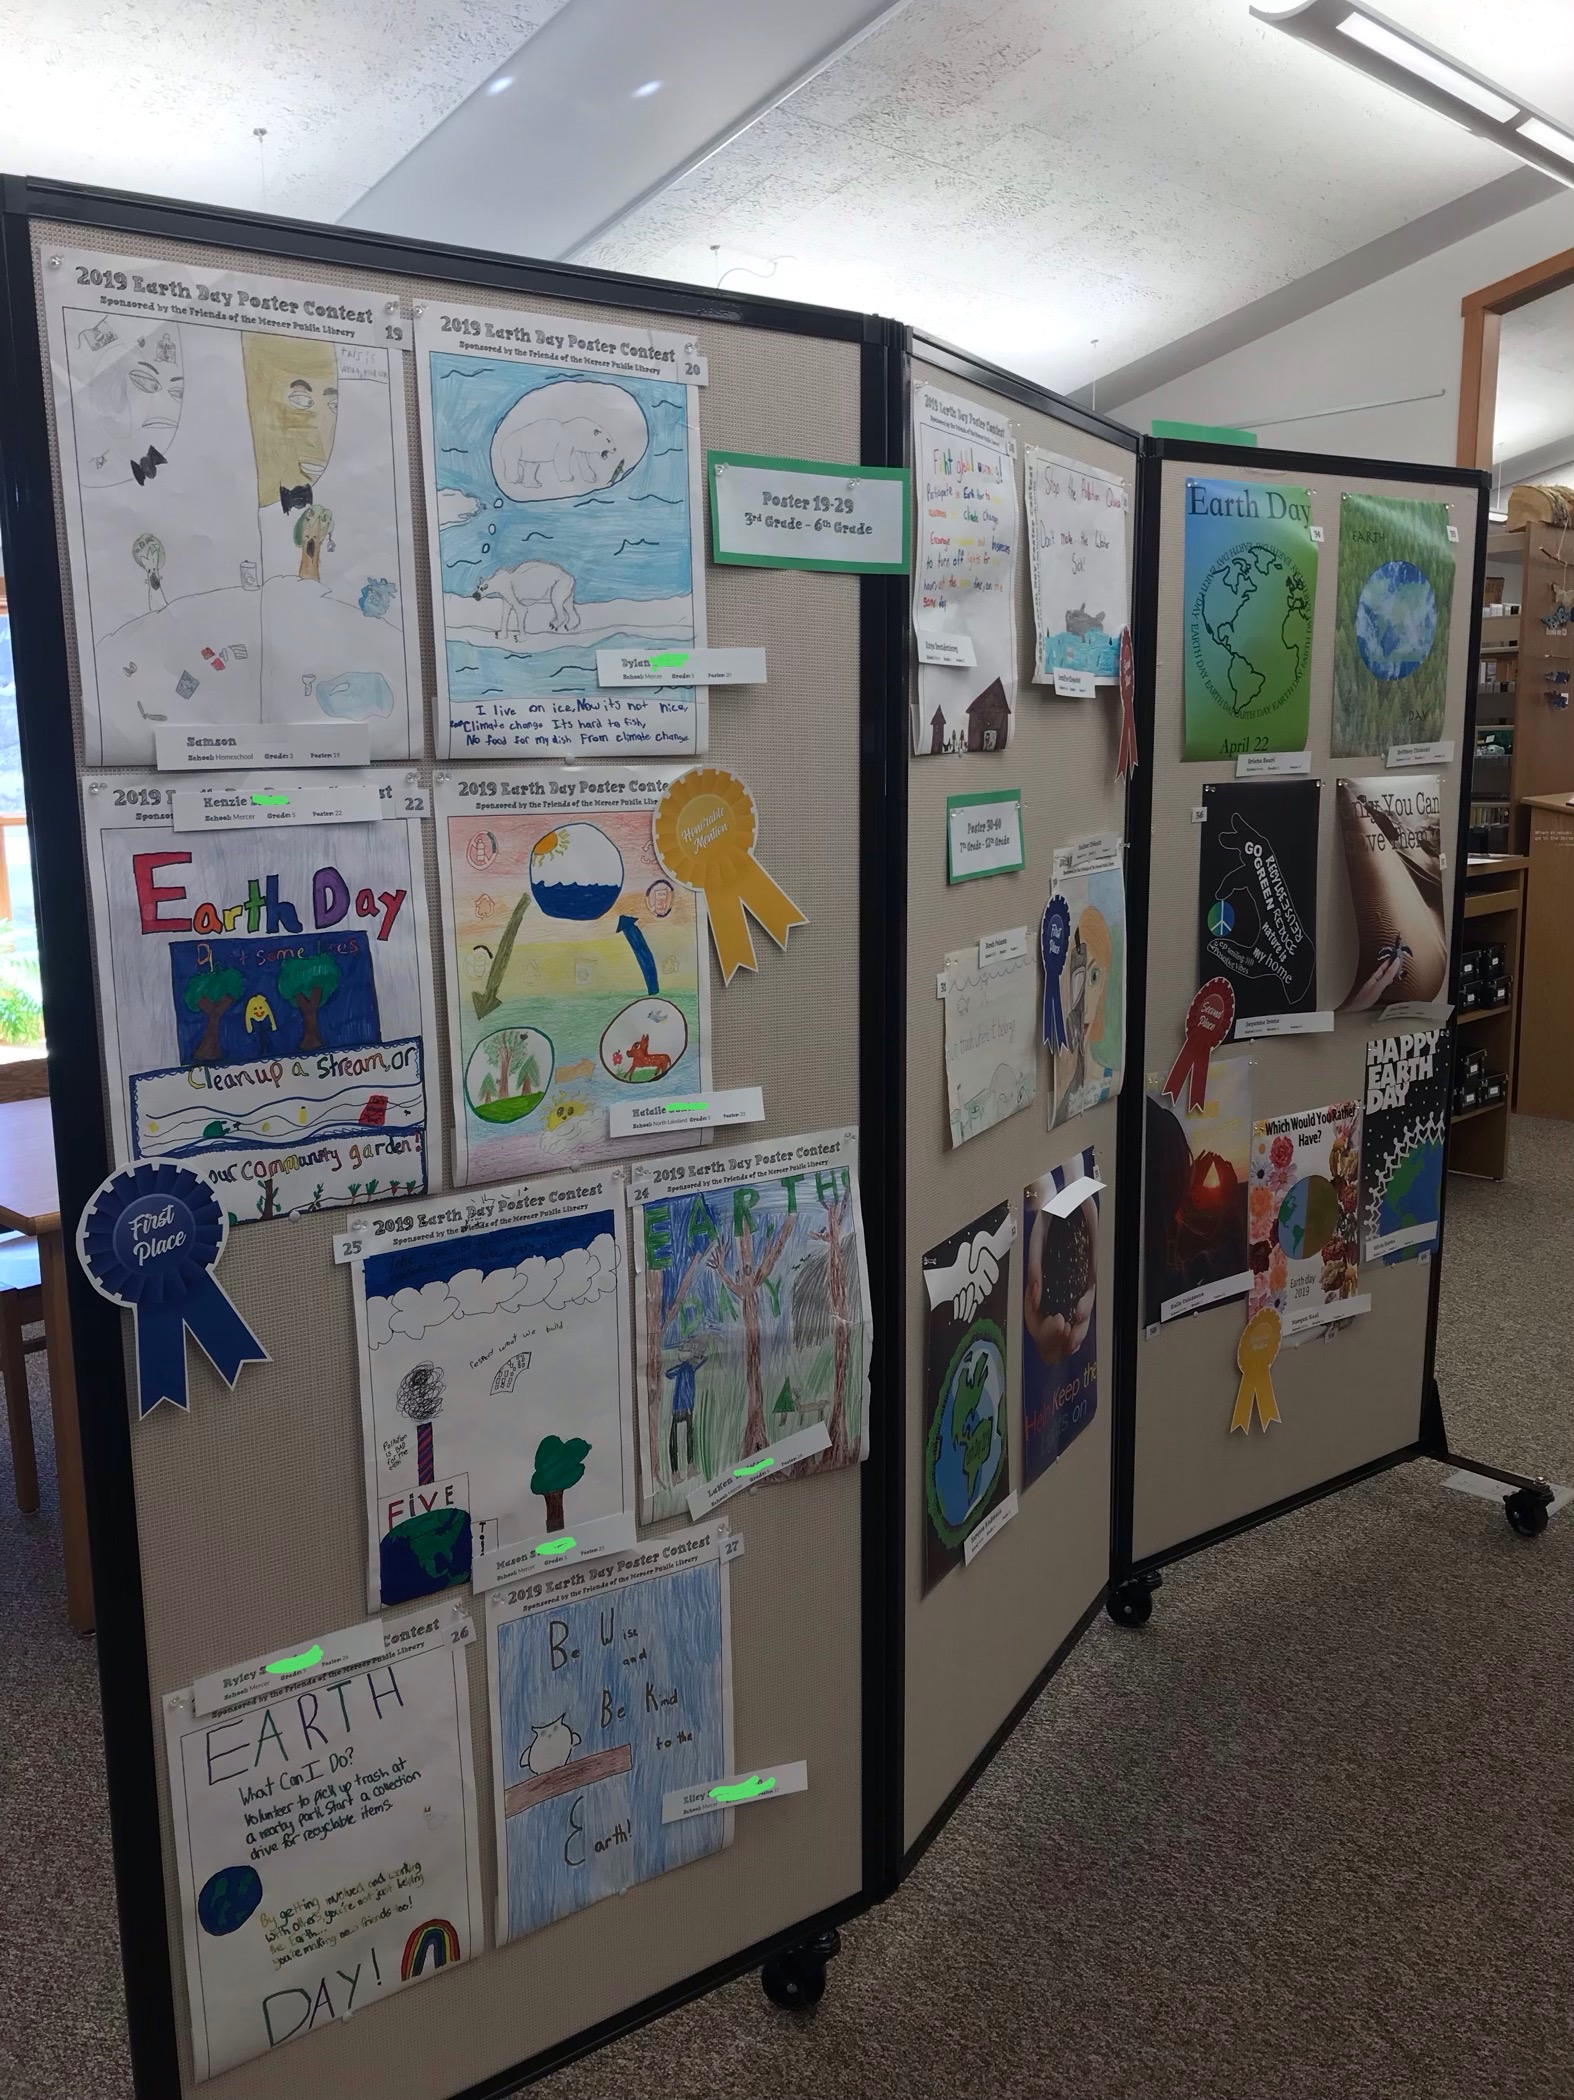 Earth Day poster contest entries displayed on a movable board in the library